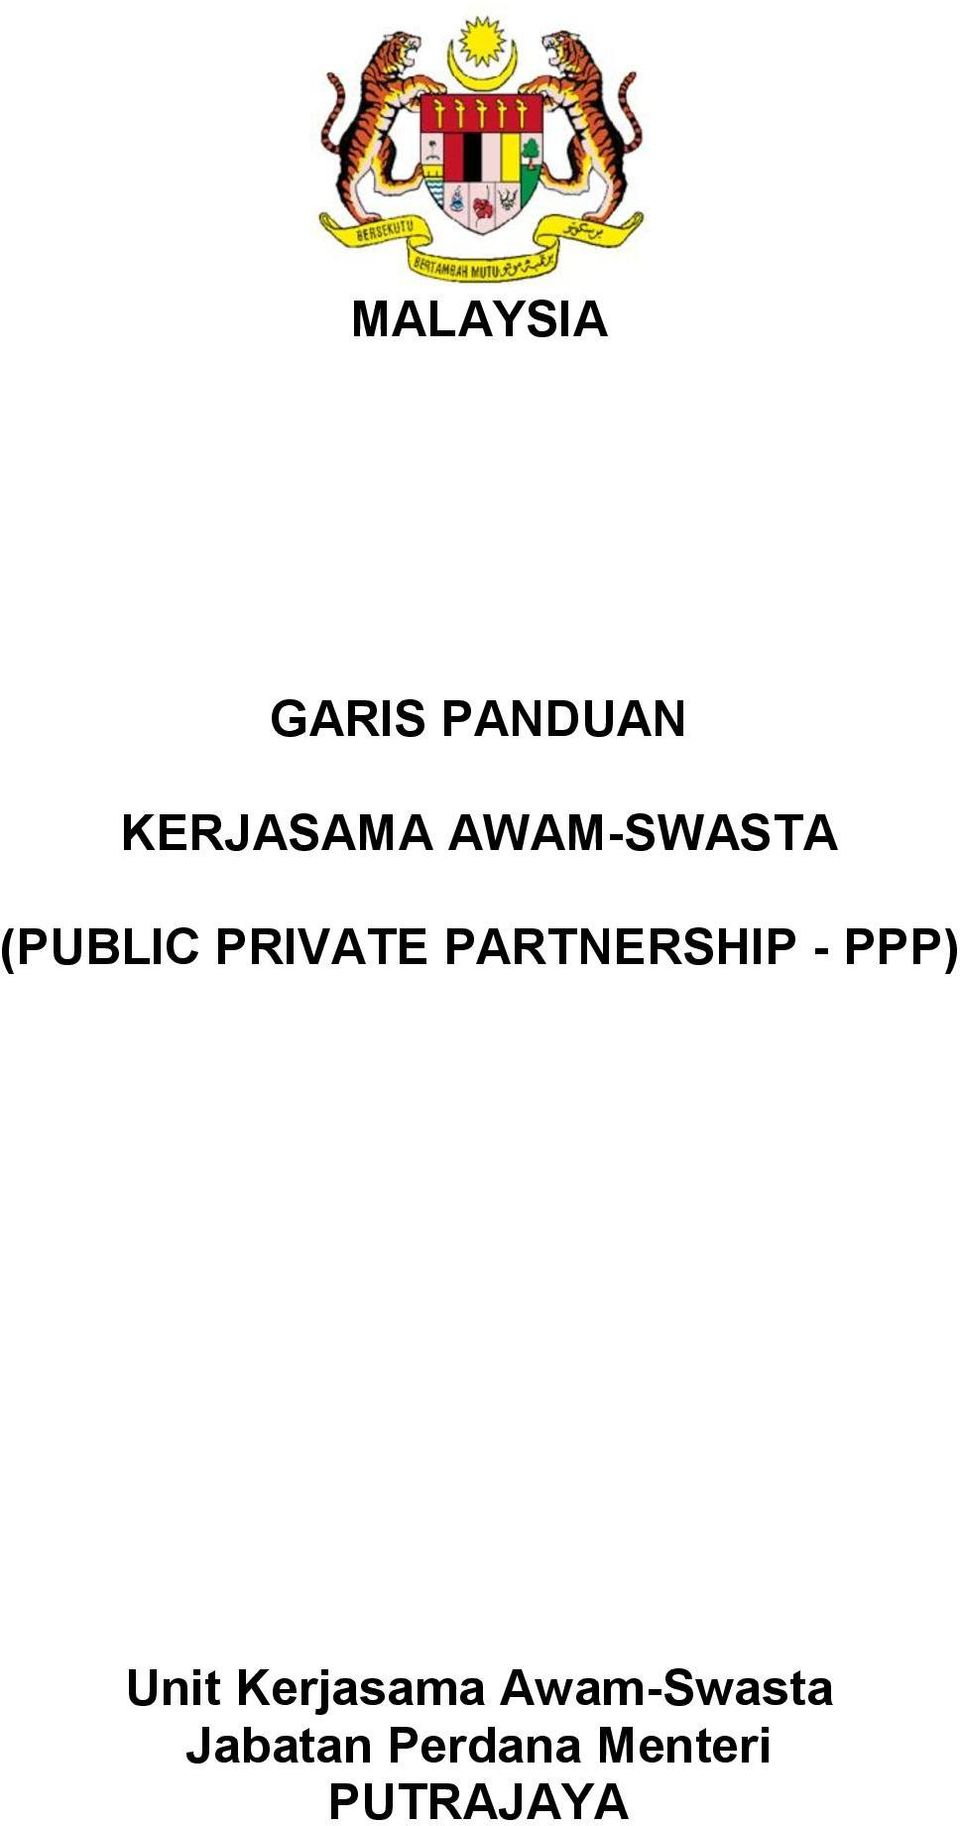 PARTNERSHIP - PPP) Unit Kerjasama